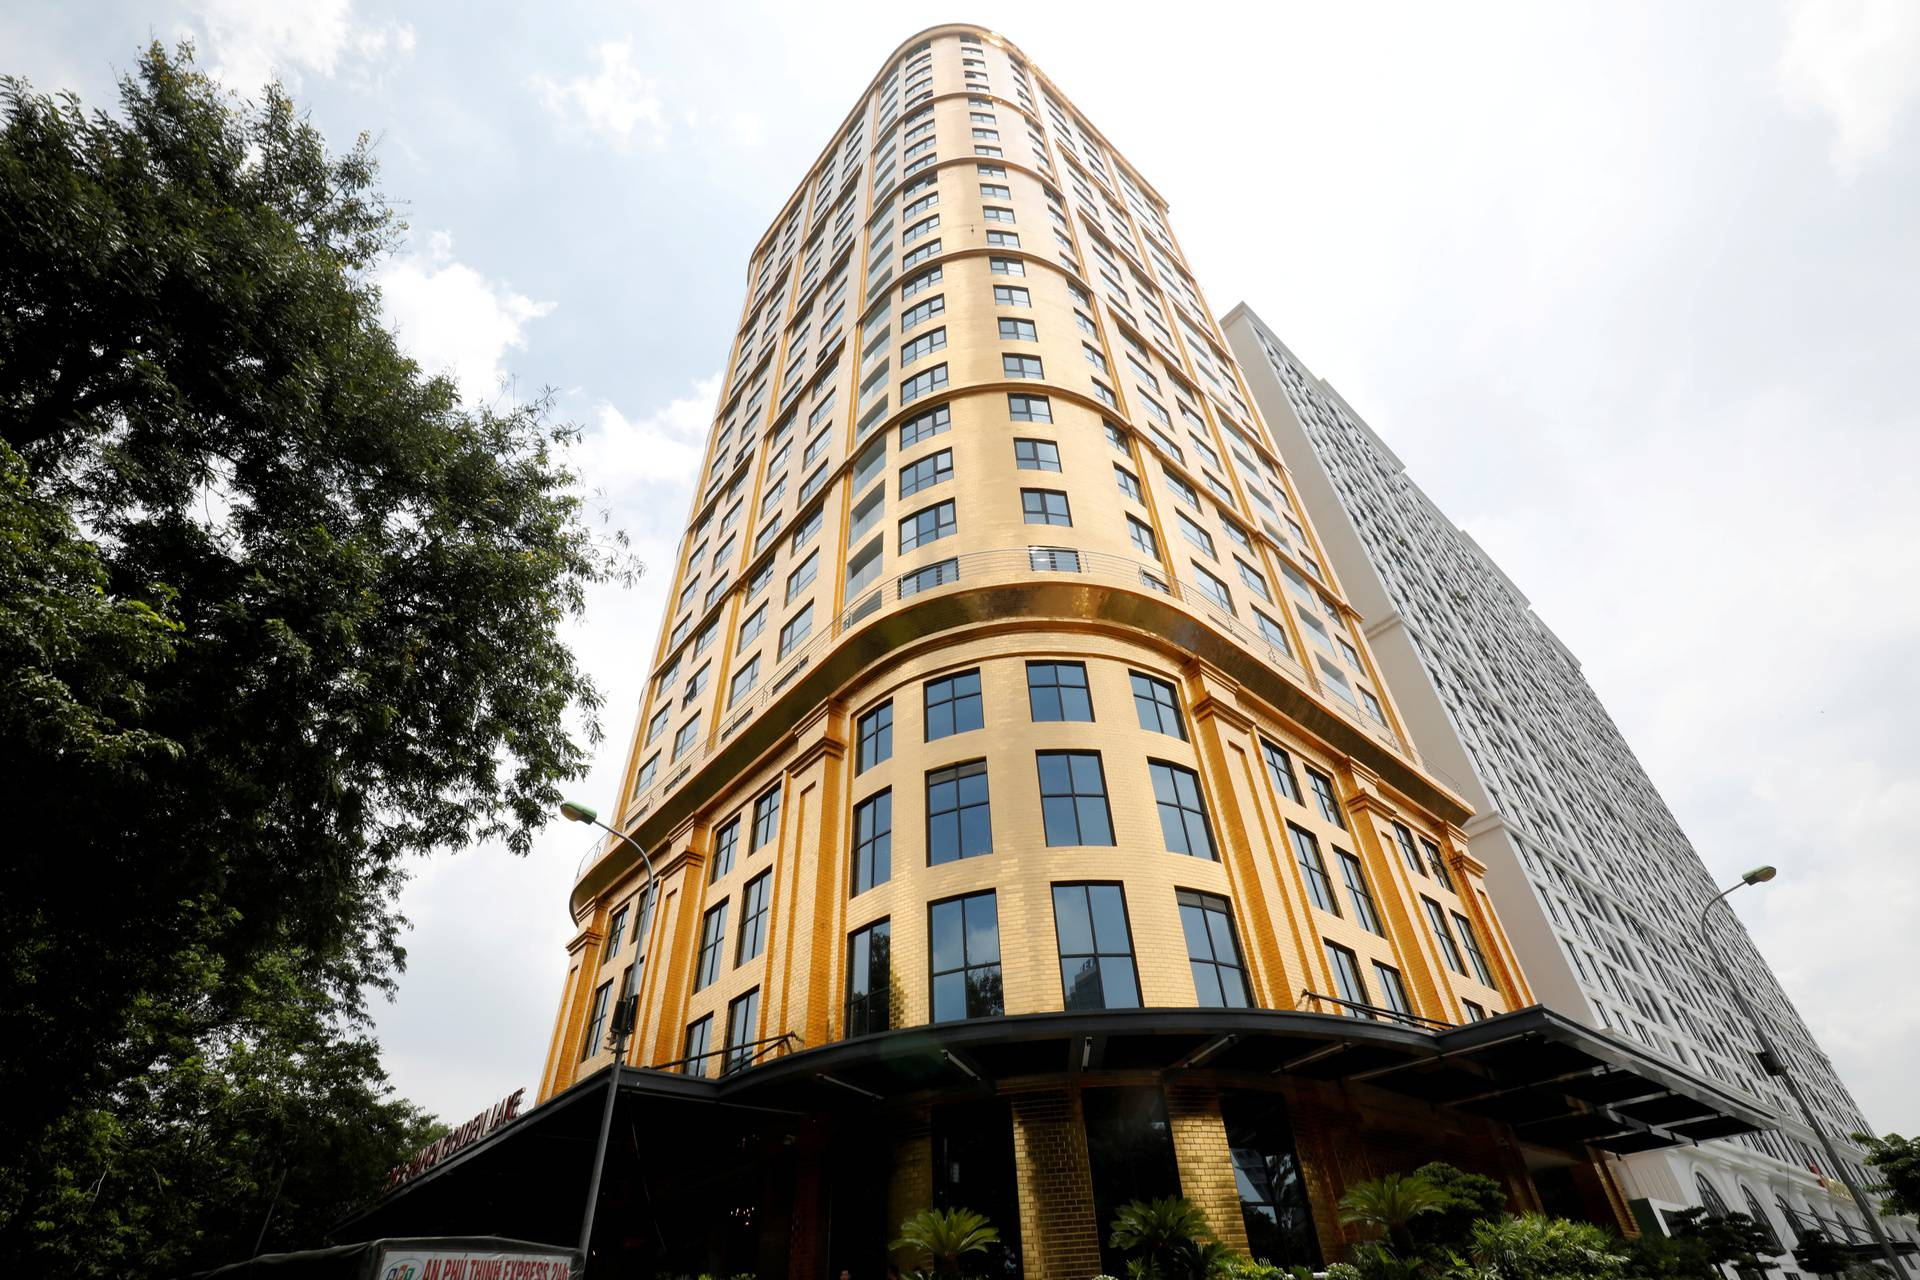 A view of the newly-inaugurated Dolce Hanoi Golden Lake hotel, which features gold plated exteriors and interiors, after the government eased a nationwide lockdown following the global outbreak of the coronavirus disease (COVID-19), in Hanoi